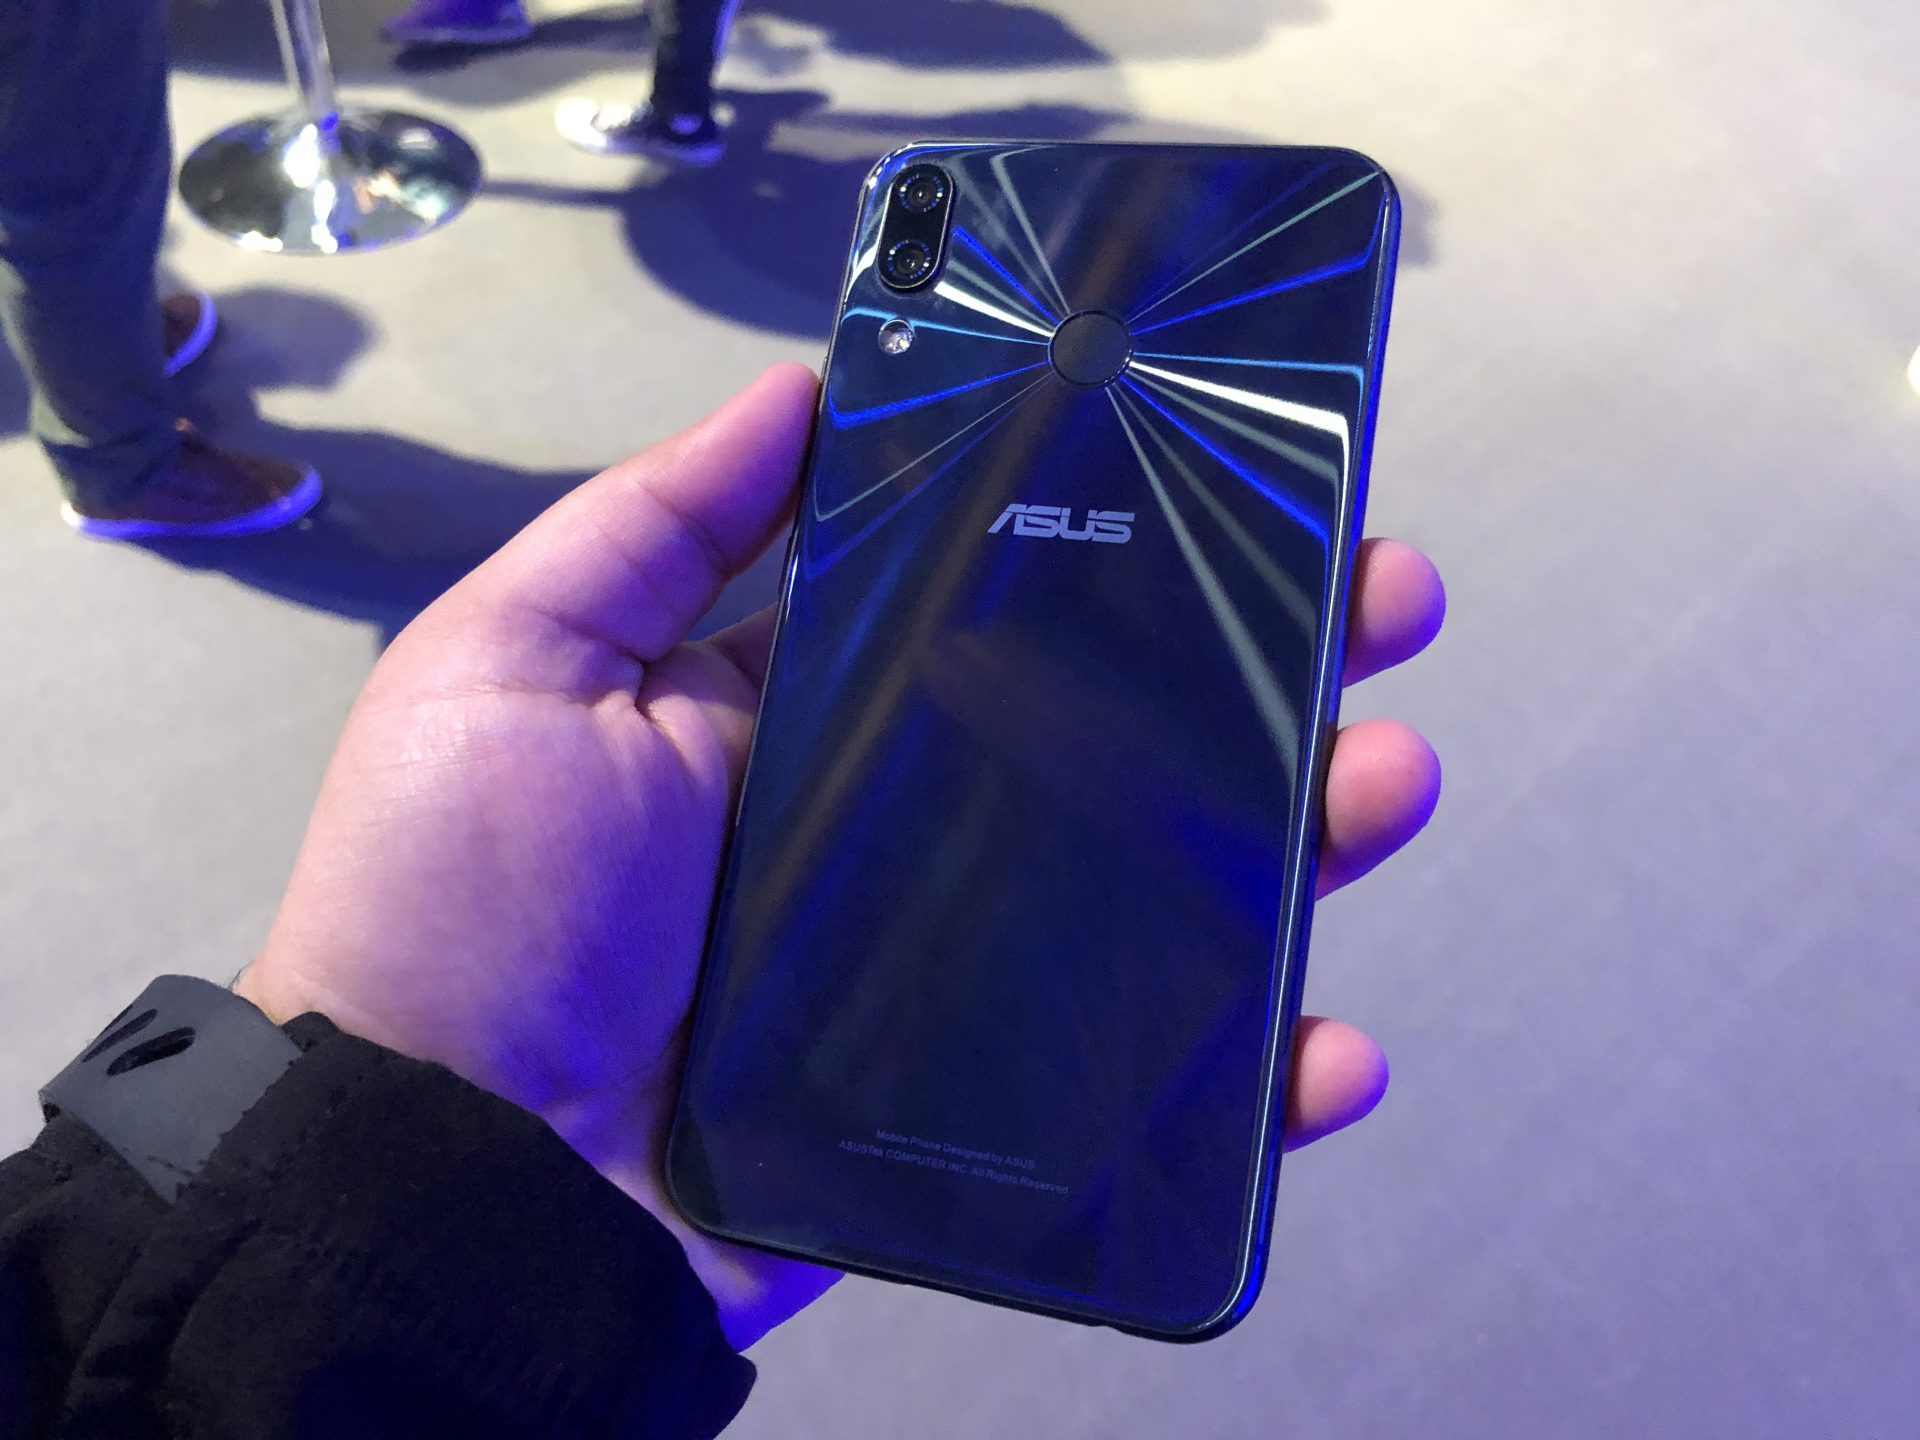 ZenFone ASUS 5Z